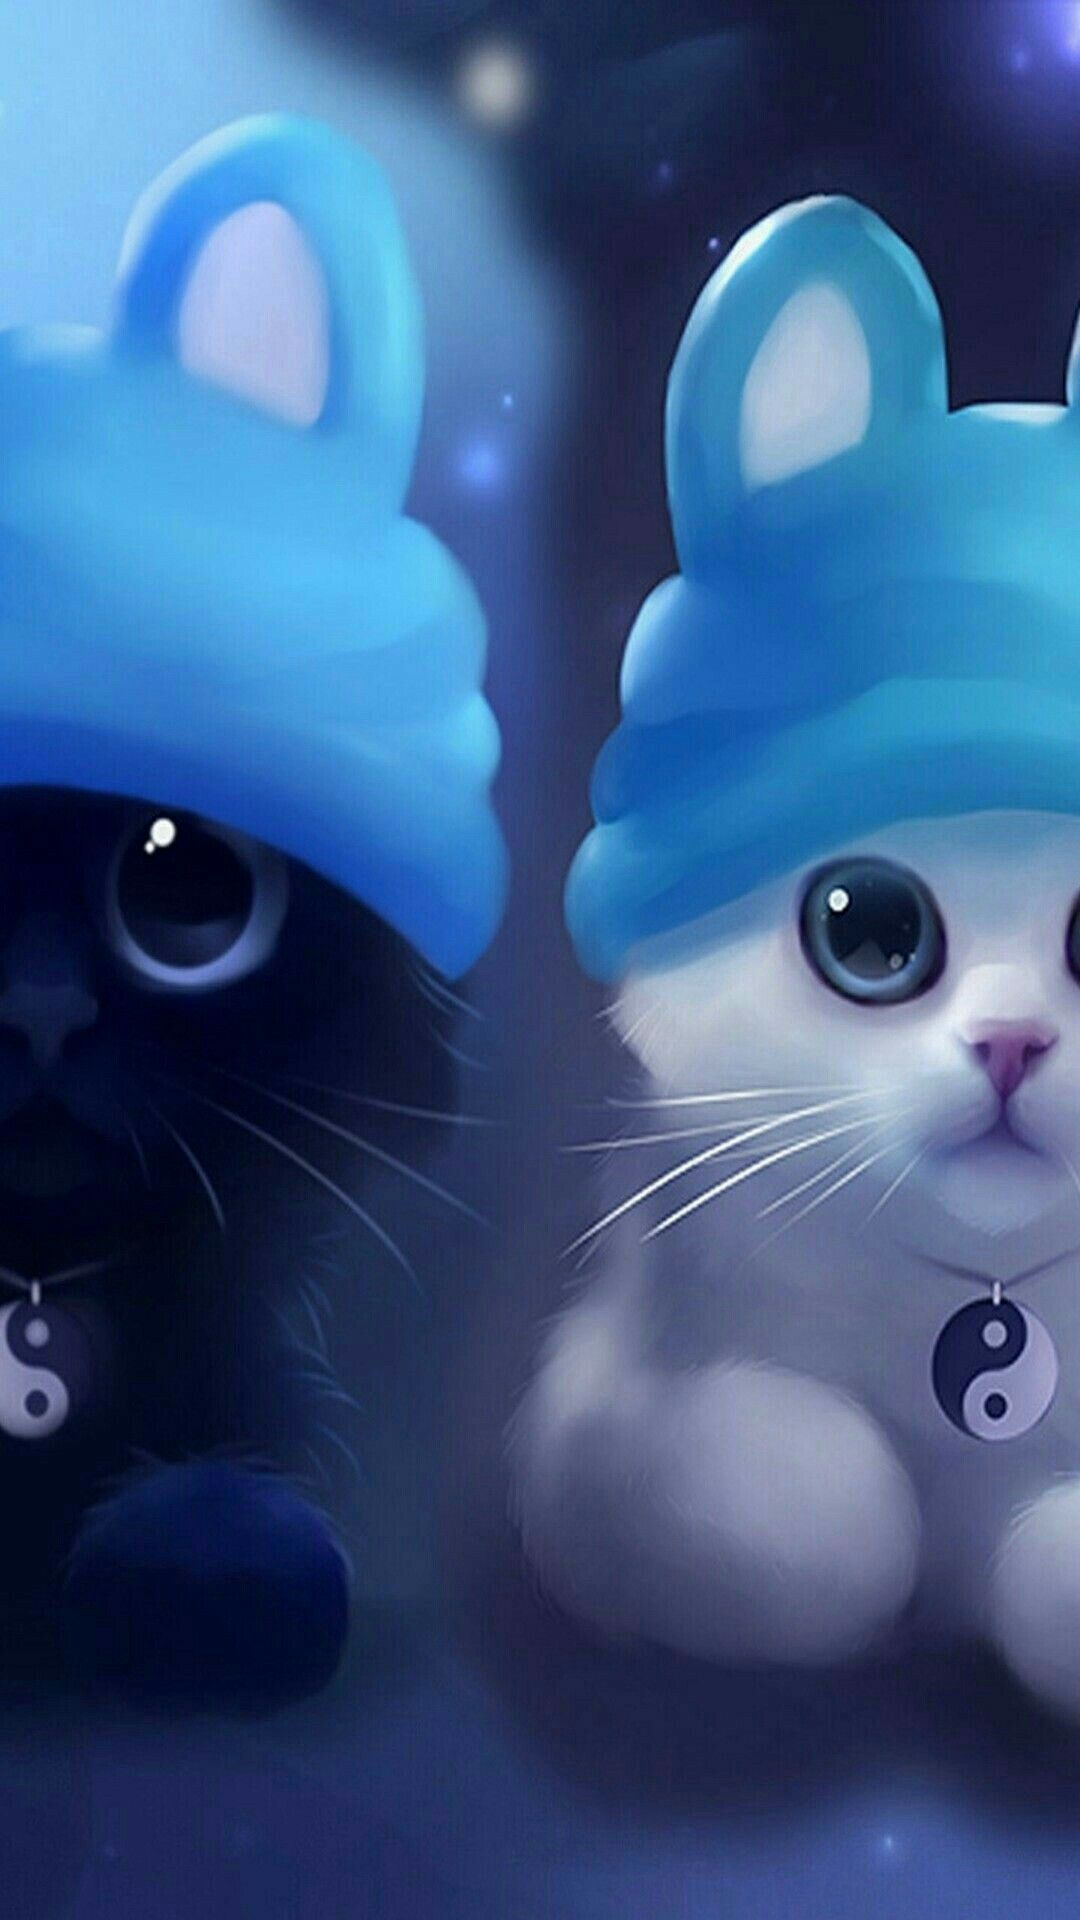 Pin By Zuibel Eva On Cute Animation Characters In 2020 Anime Animals Cute Animal Drawings Animal Drawings